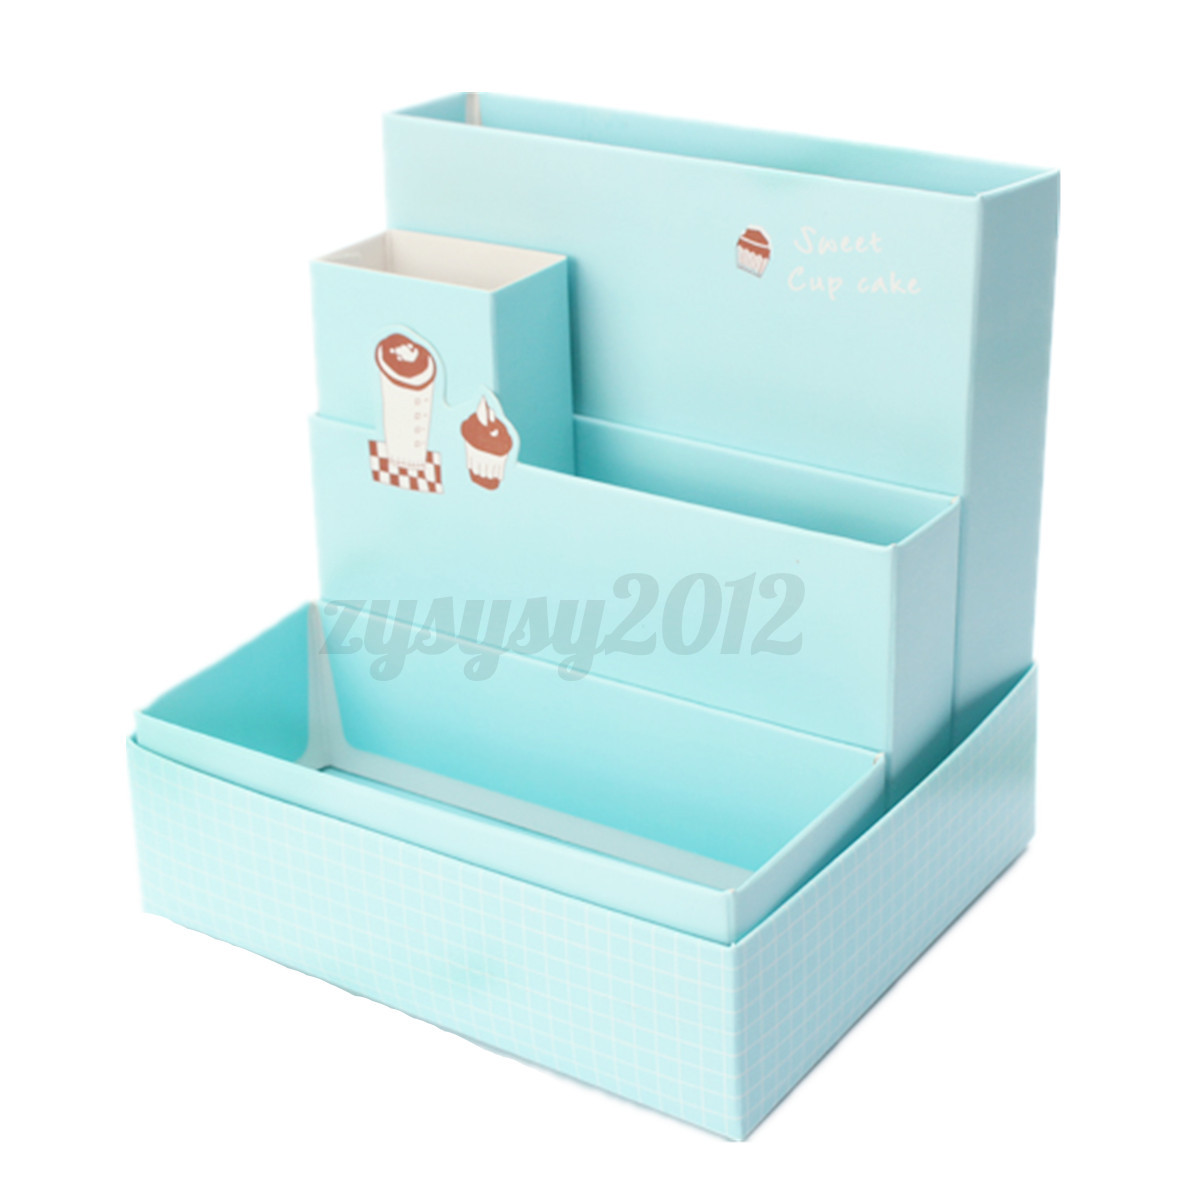 Cute paper storage organizer stationery box makeup - Cute desk organizer ...